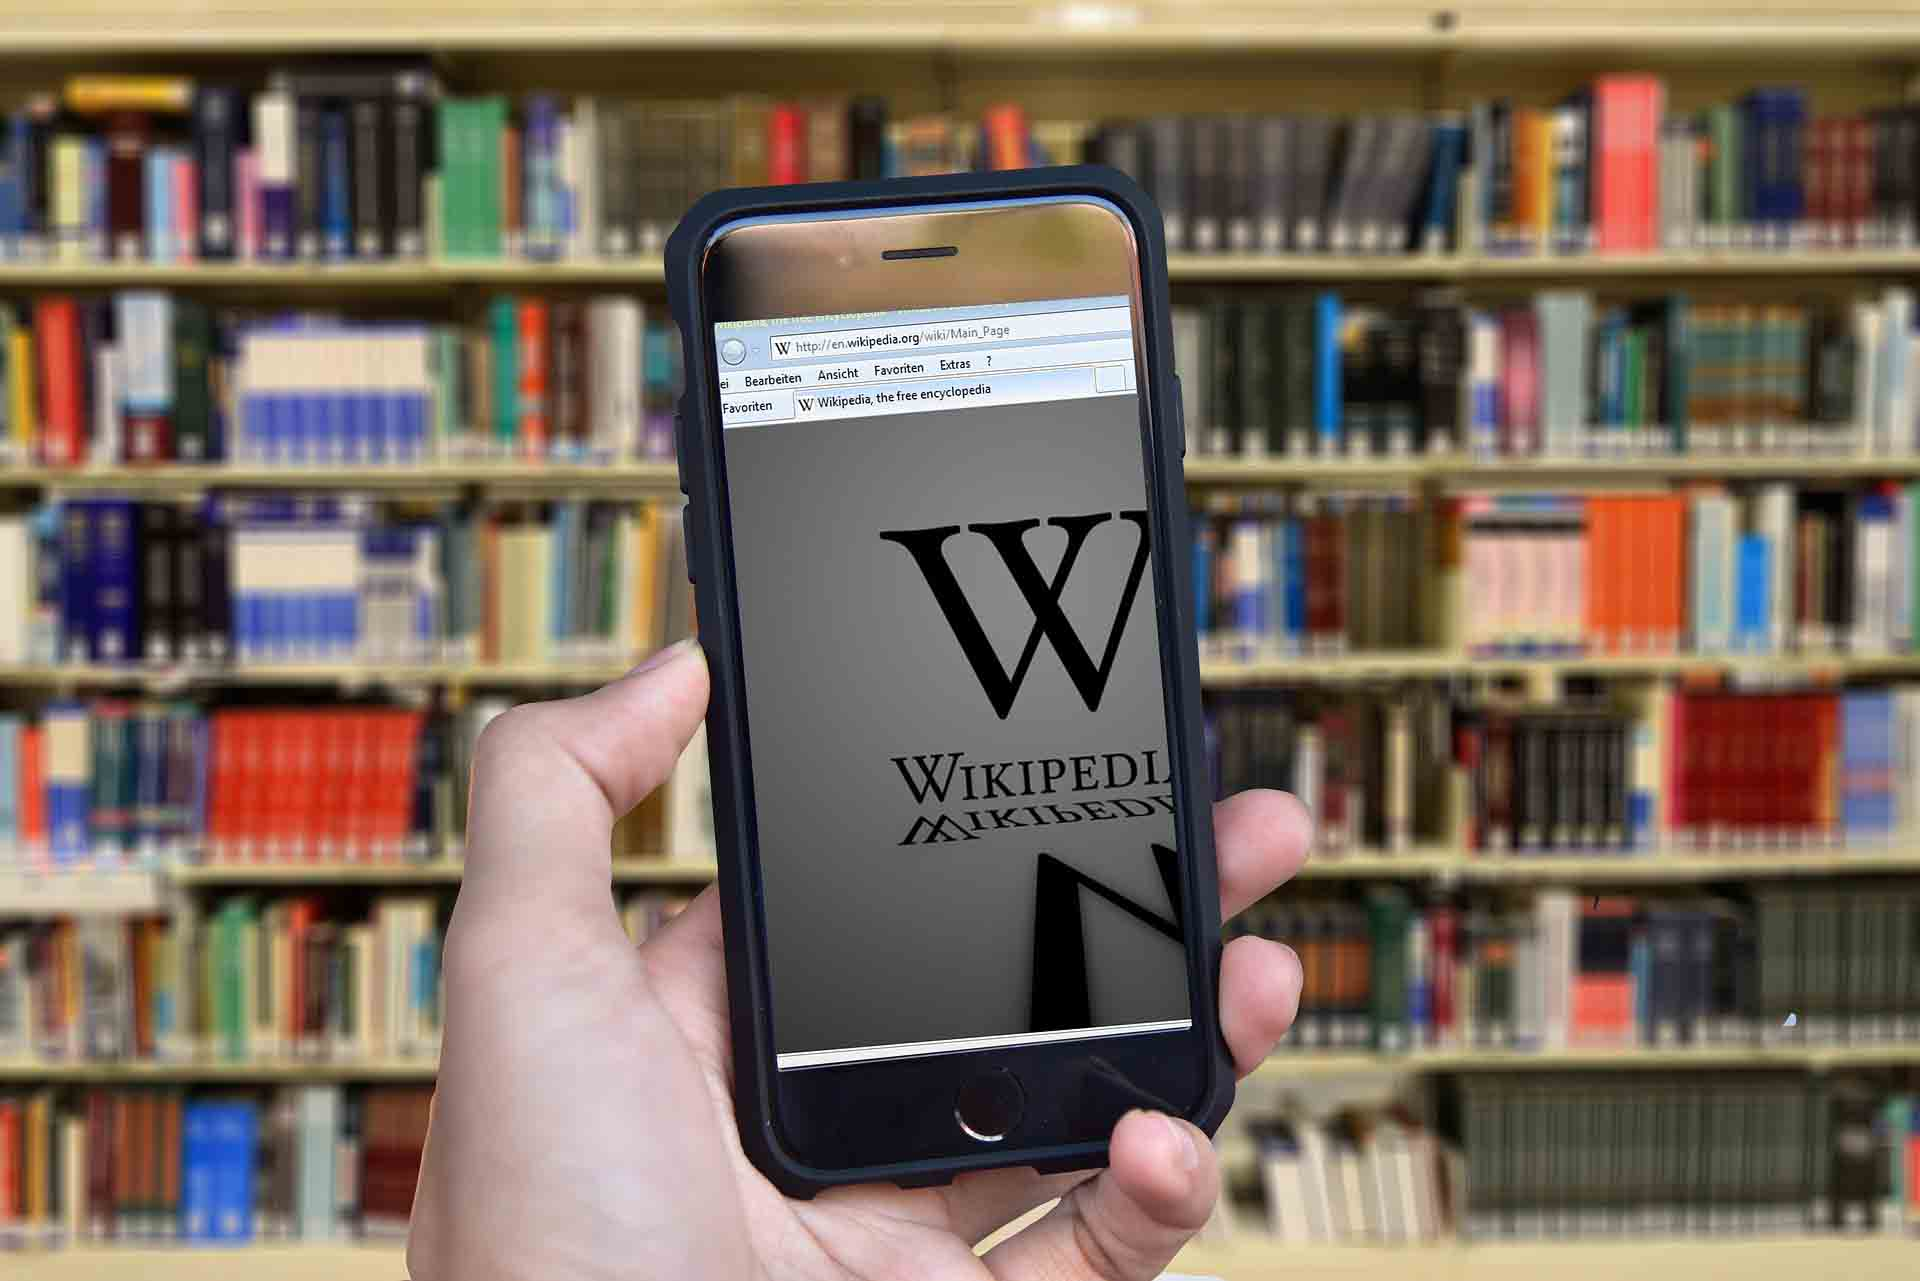 Mobile screen shows wikipedia page